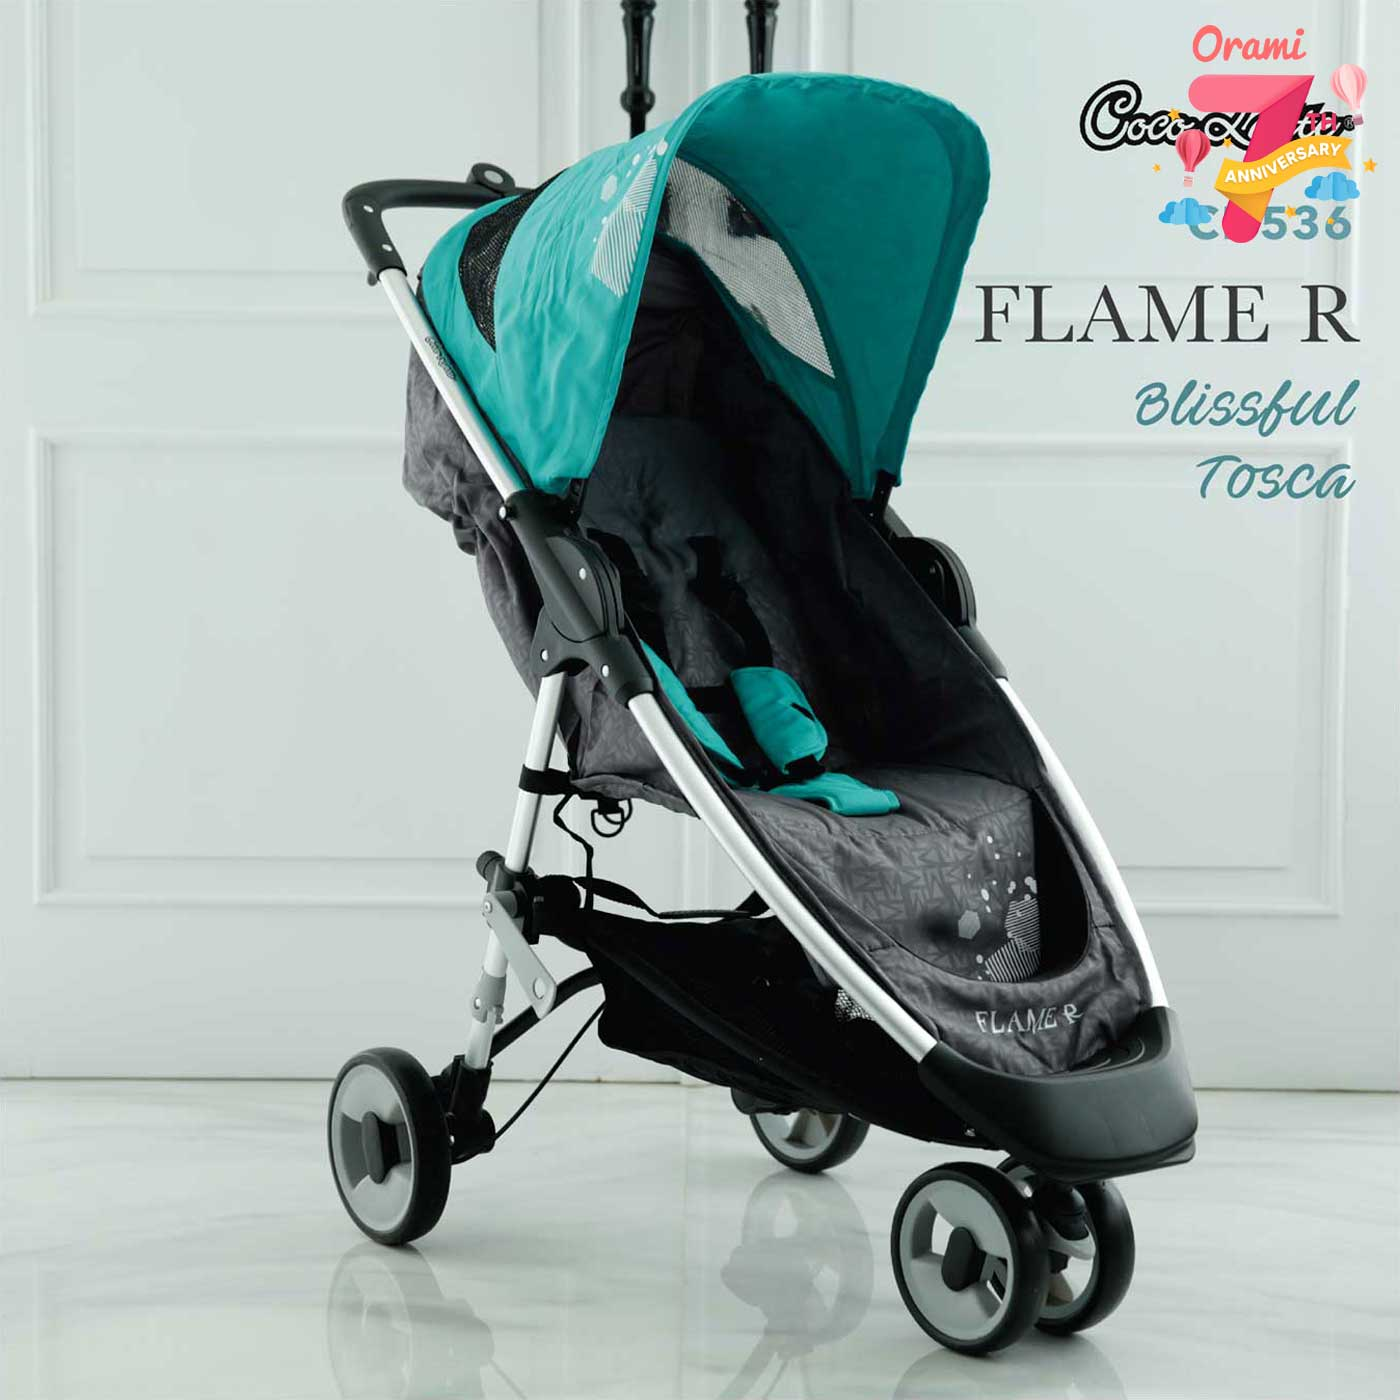 Promo Cocolatte Stroller CL 536 Flame R- Blissful Tosca